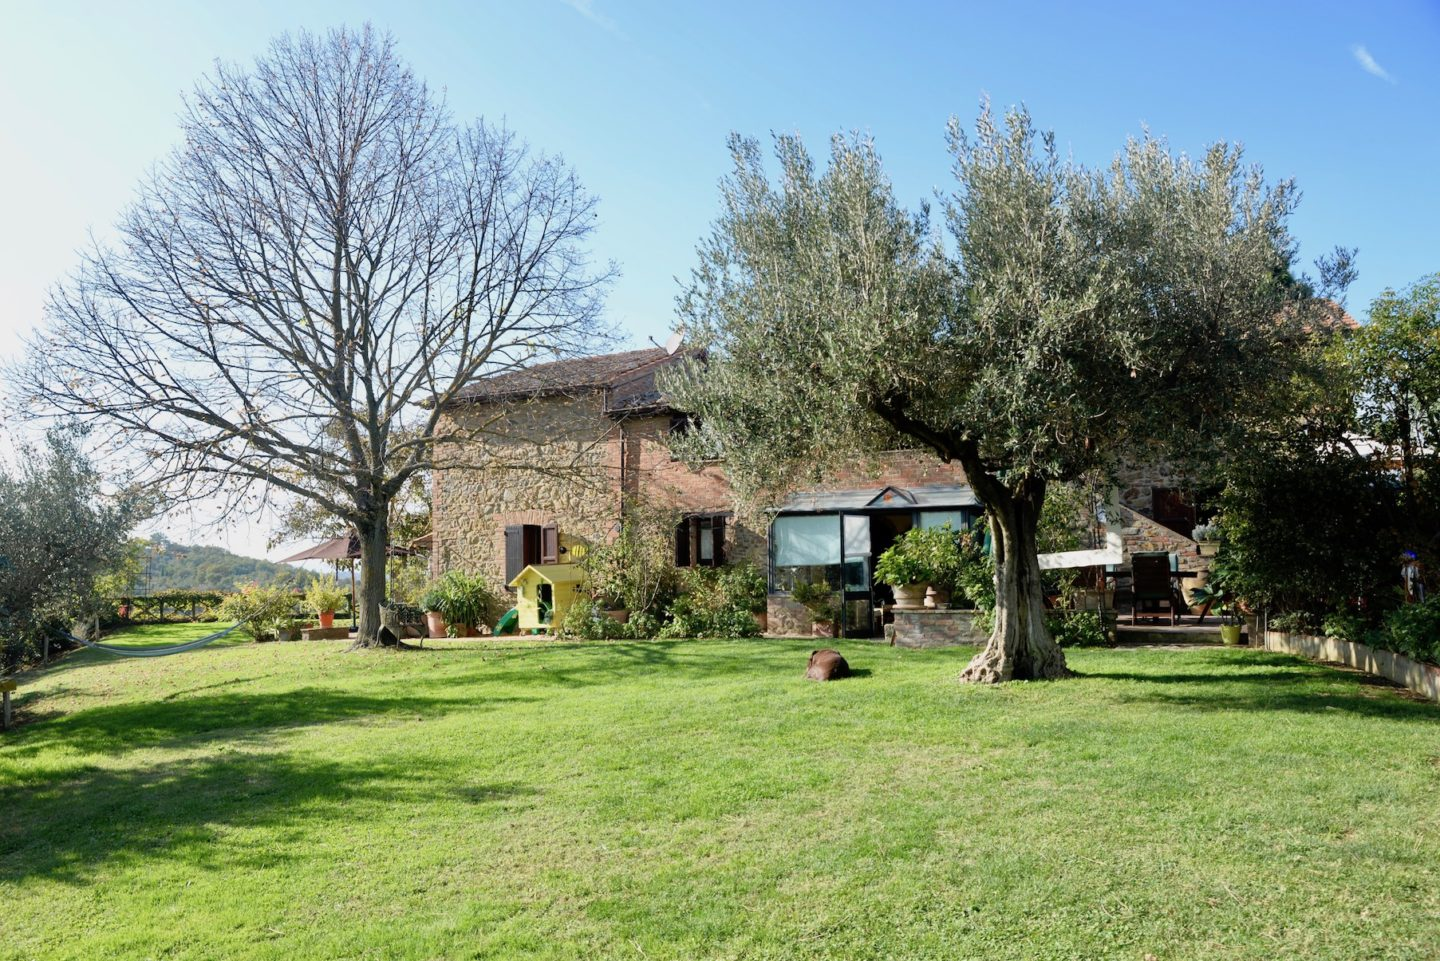 Fontanaro organic farm and villas